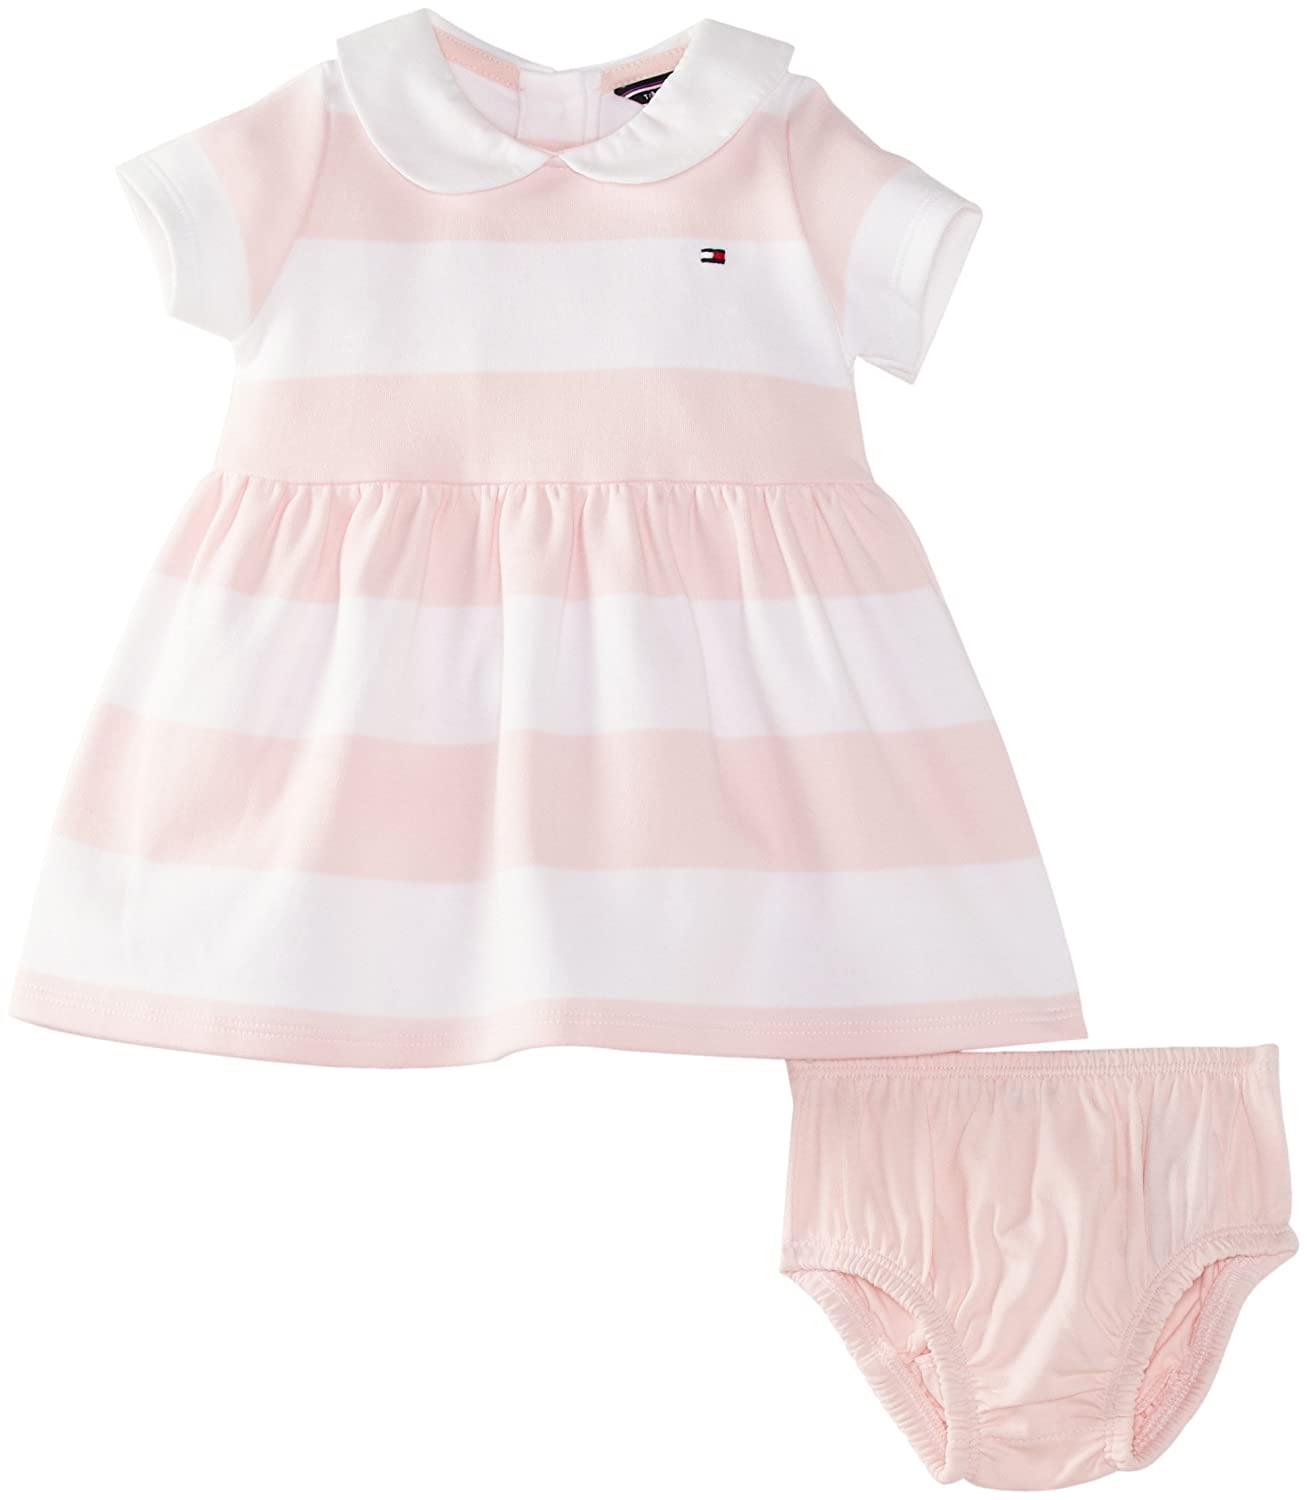 Tommy Hilfiger Baby Girls Rugby Short Sleeve Striped Dress Baby